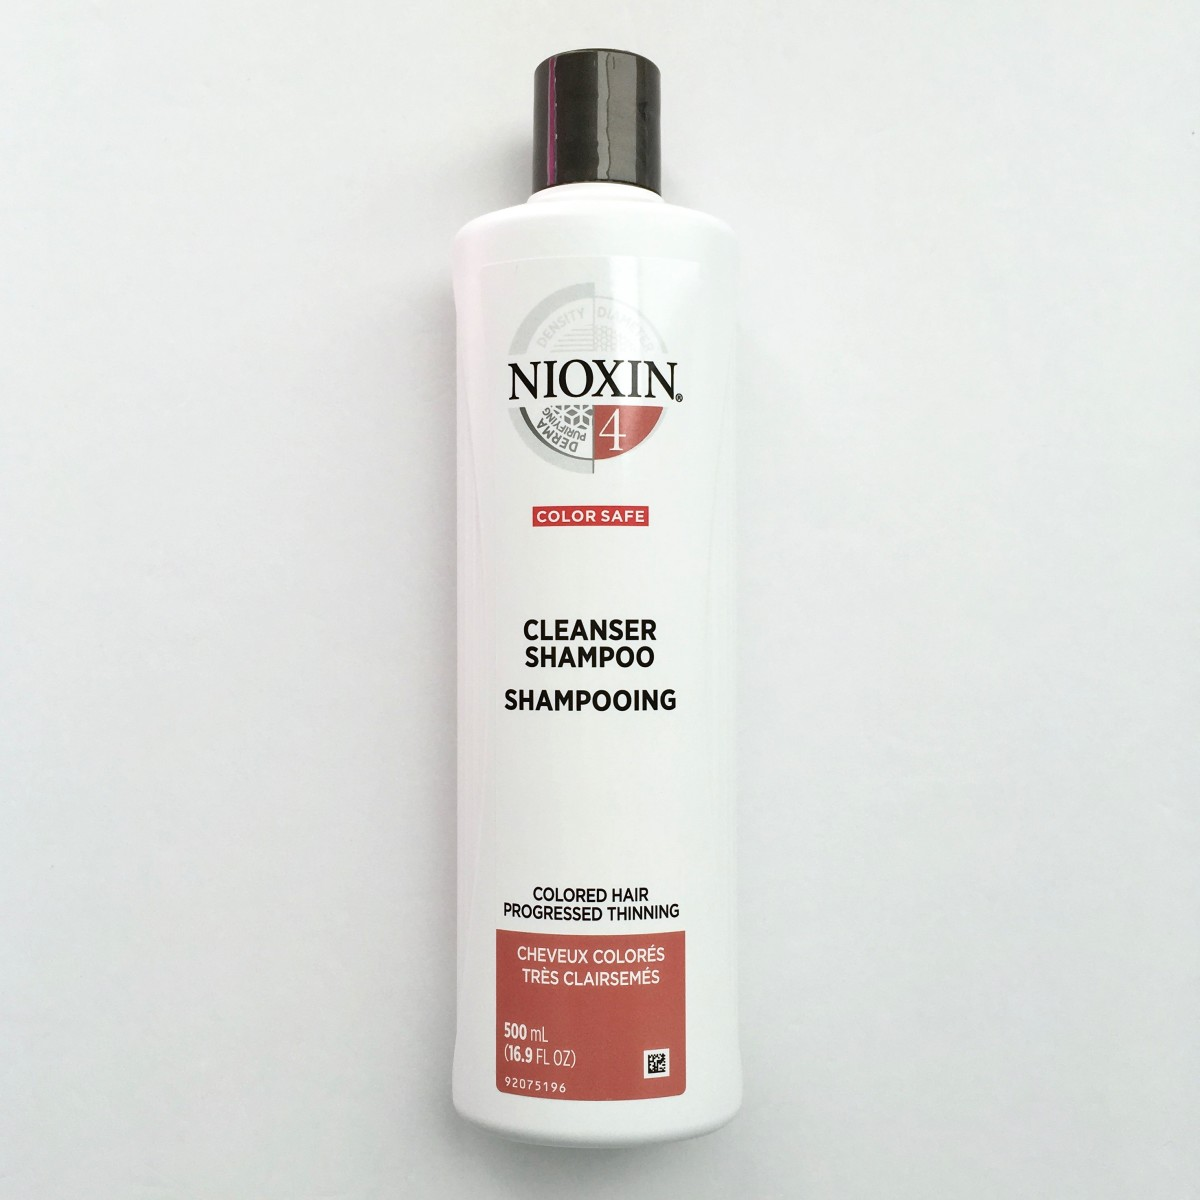 Nioxin Cleanser is another one of my favorite shampoos.